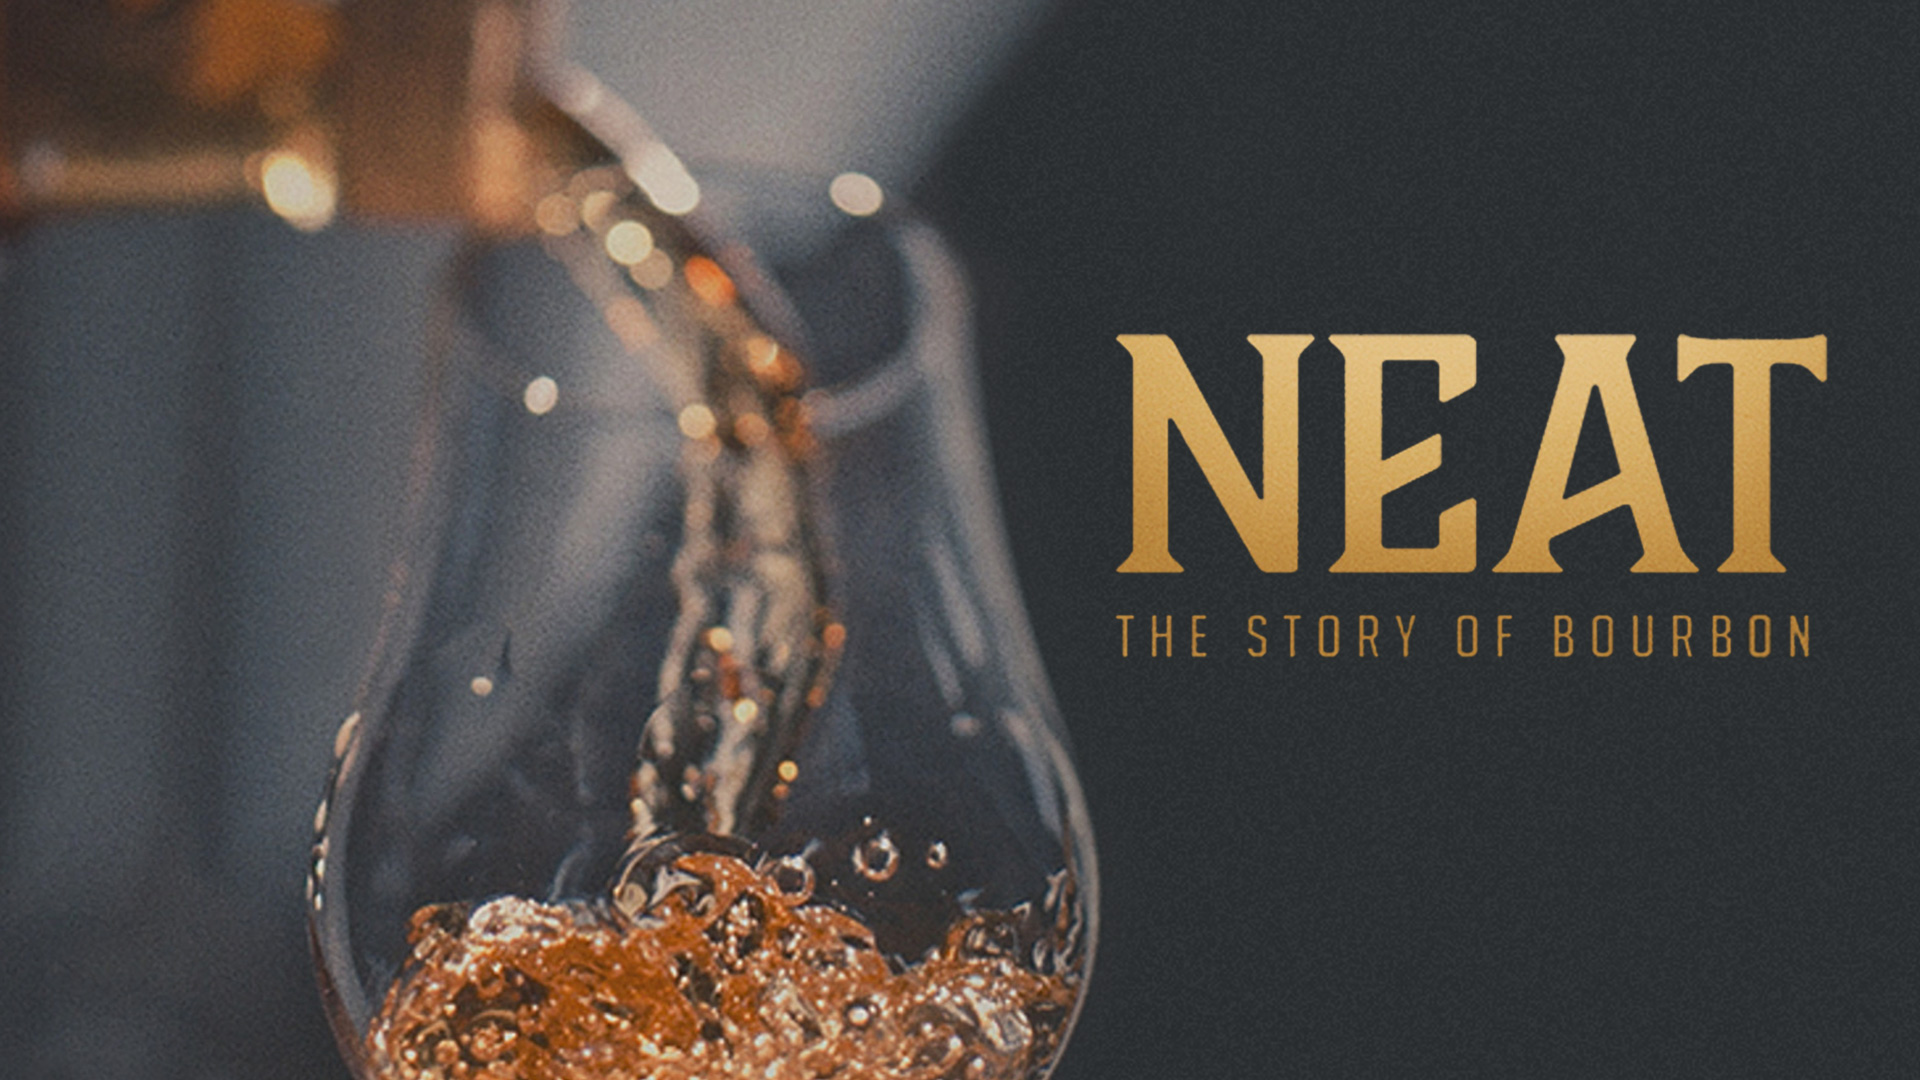 Neat: The Story of Bourbon